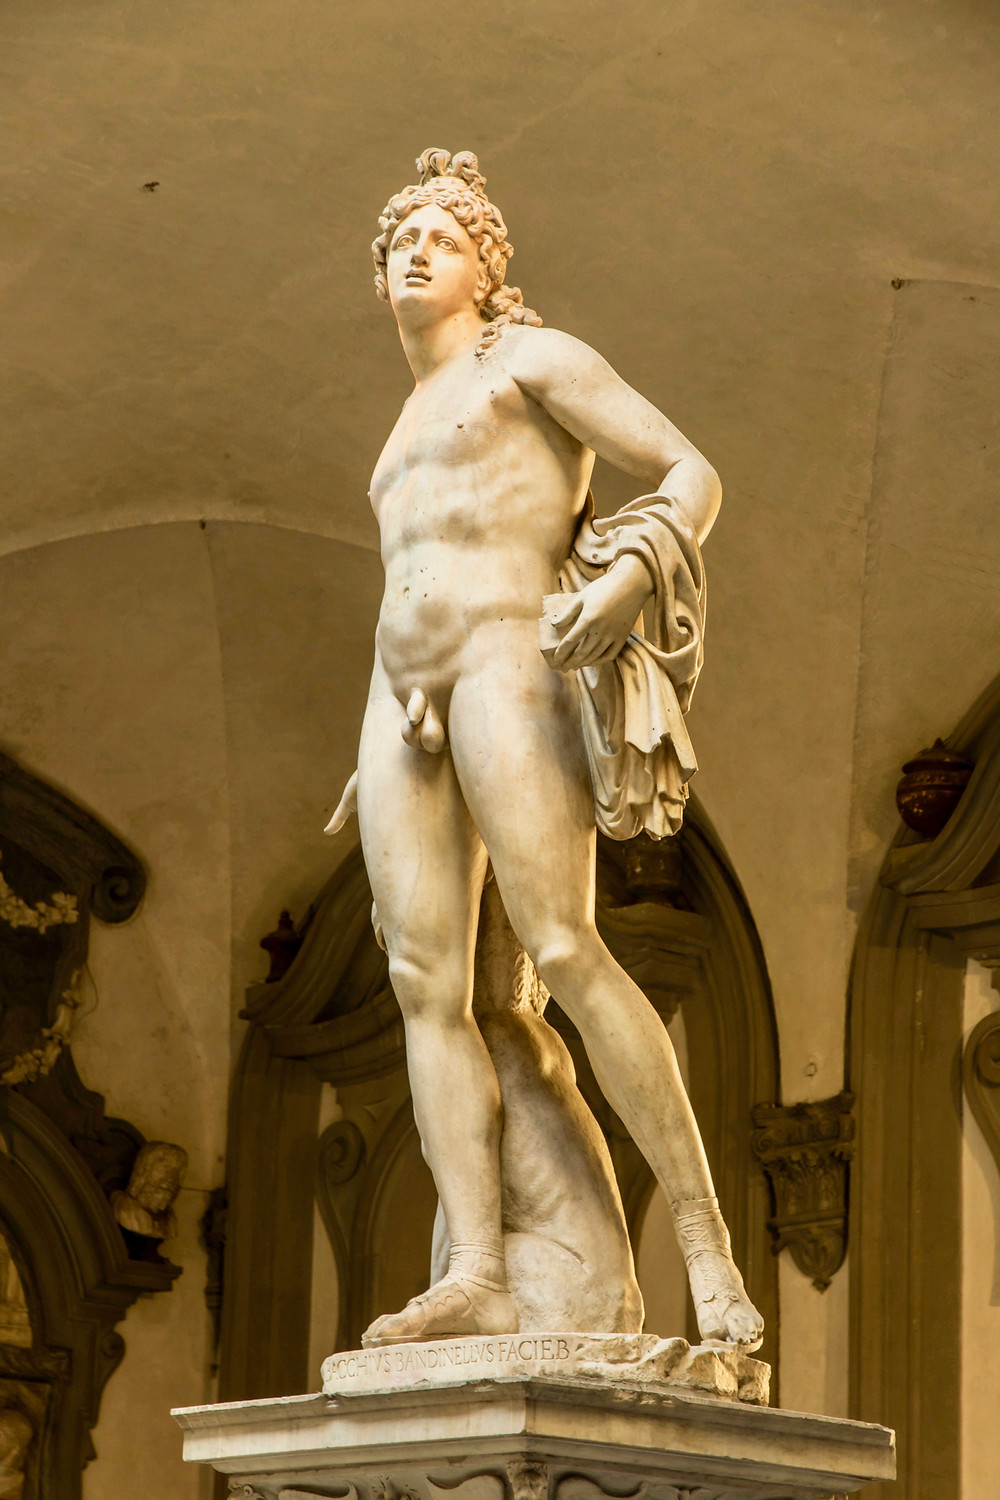 Baccio Bandinelli, Orpheus, 1519 -- in the palace courtyard